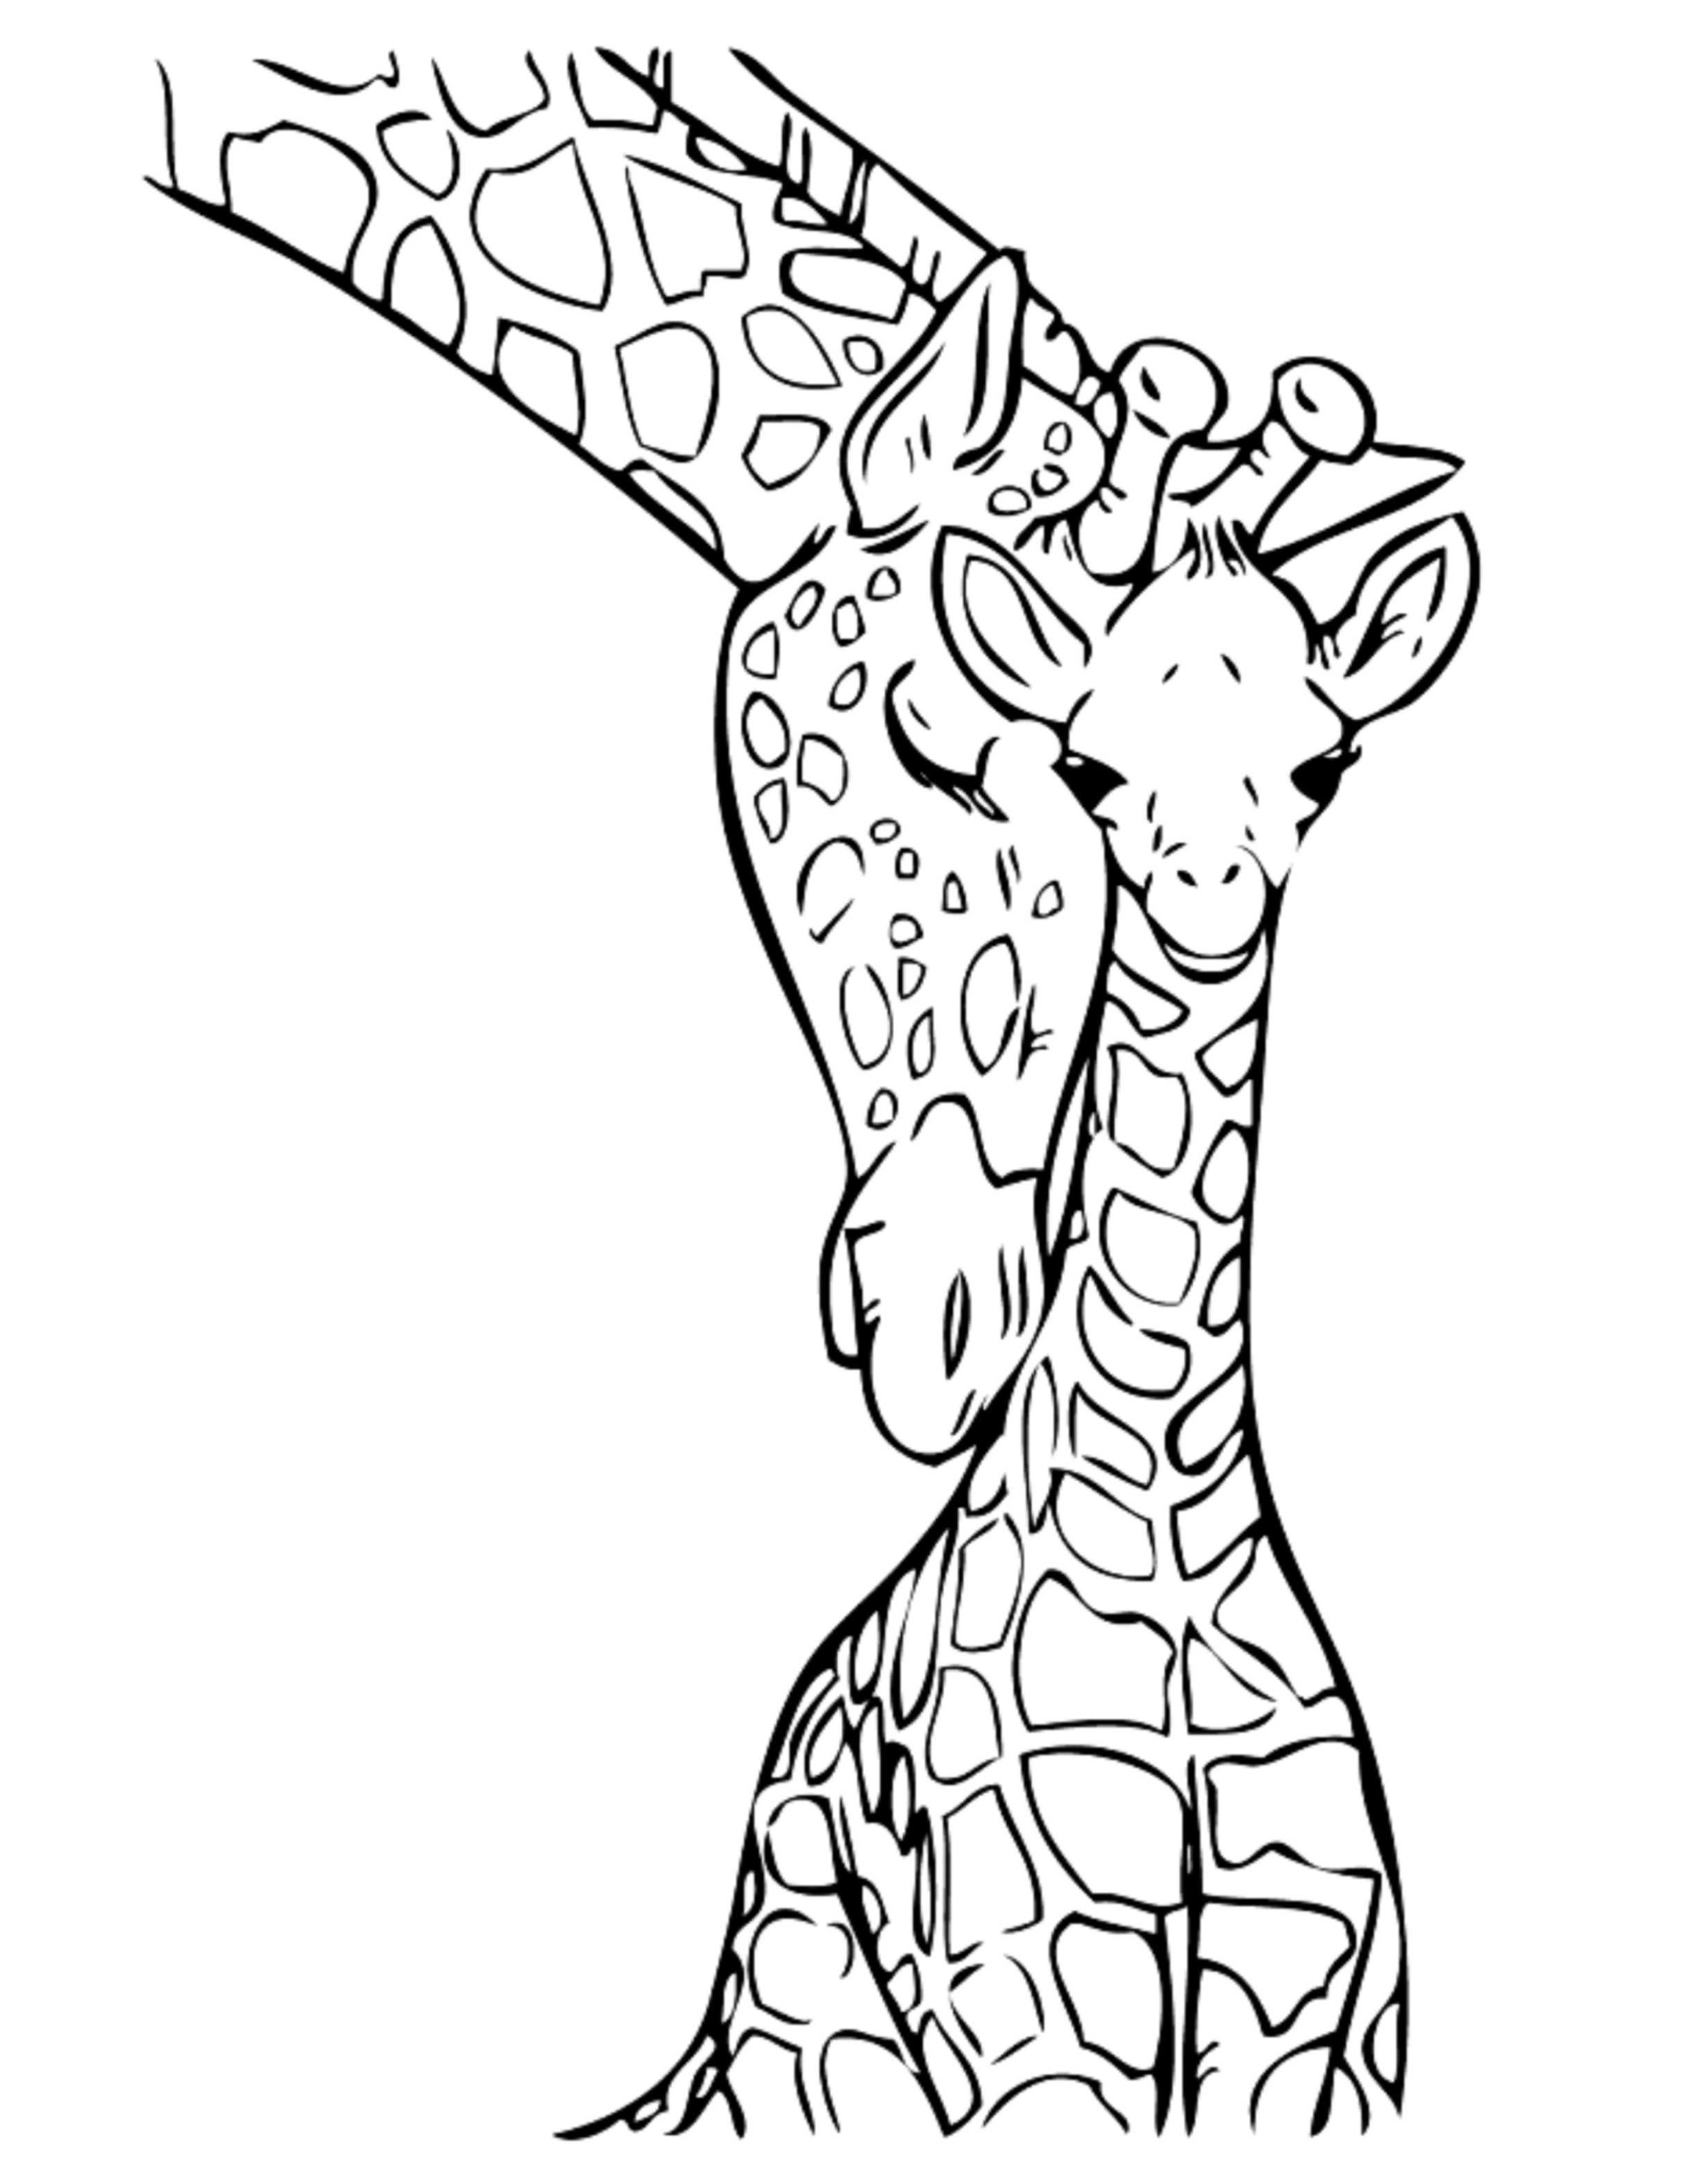 giraffe coloring image giraffe coloring pages the sun flower pages coloring giraffe image